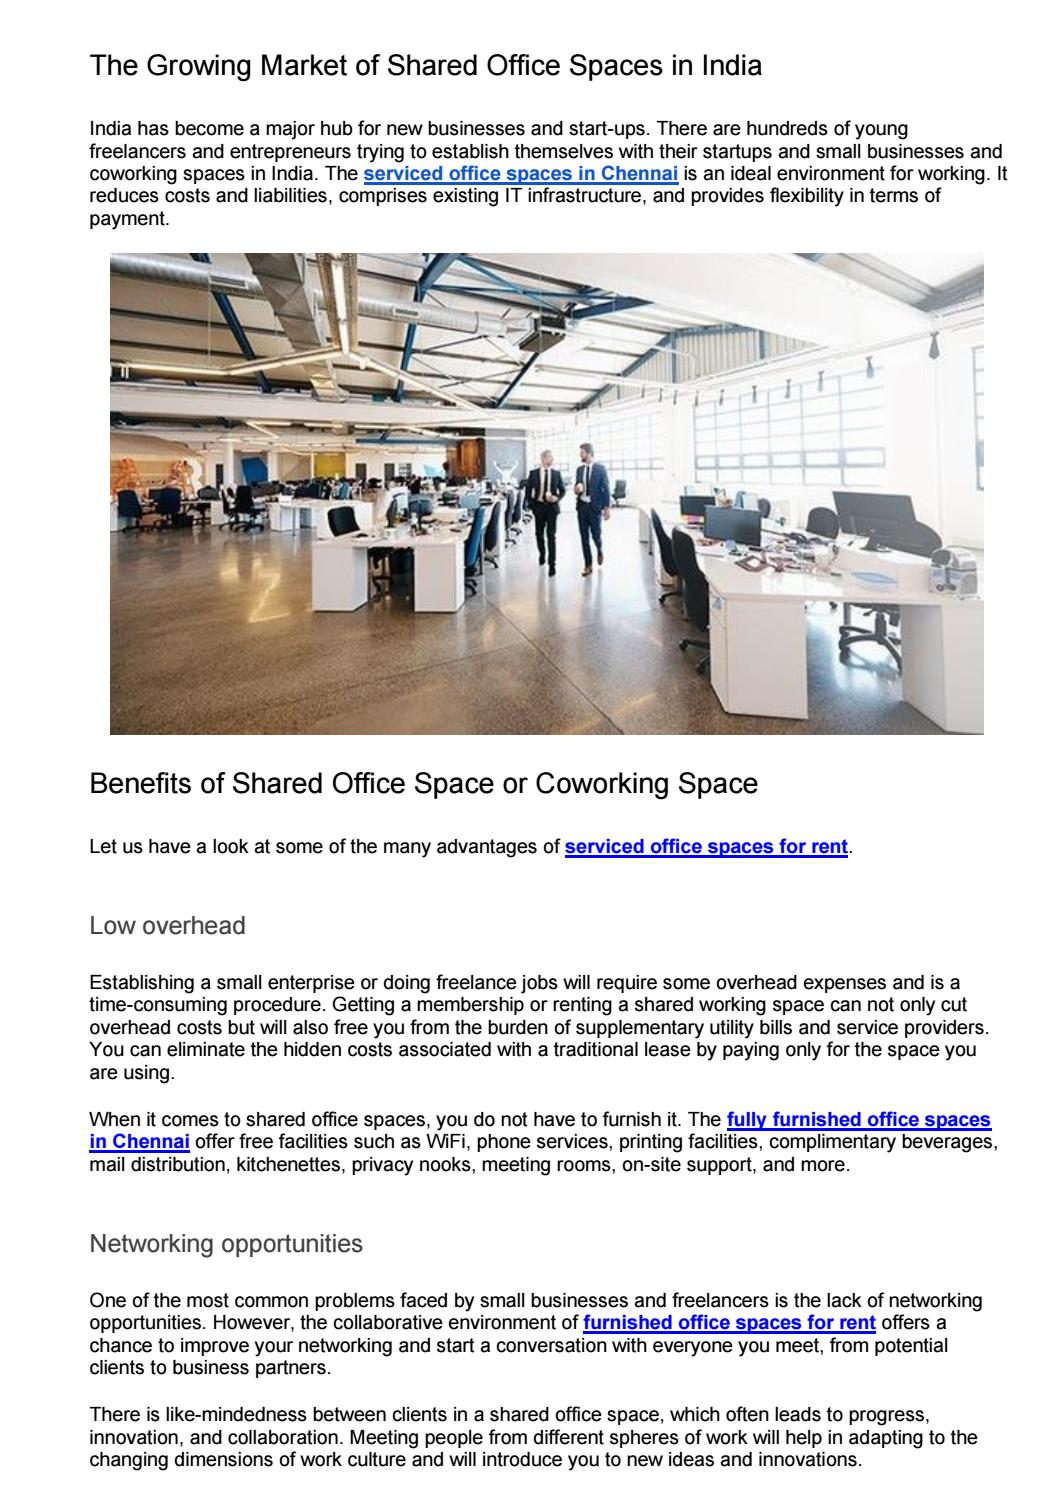 The Growing Market Of Shared Office Spaces In India By Ananyababita222 Issuu